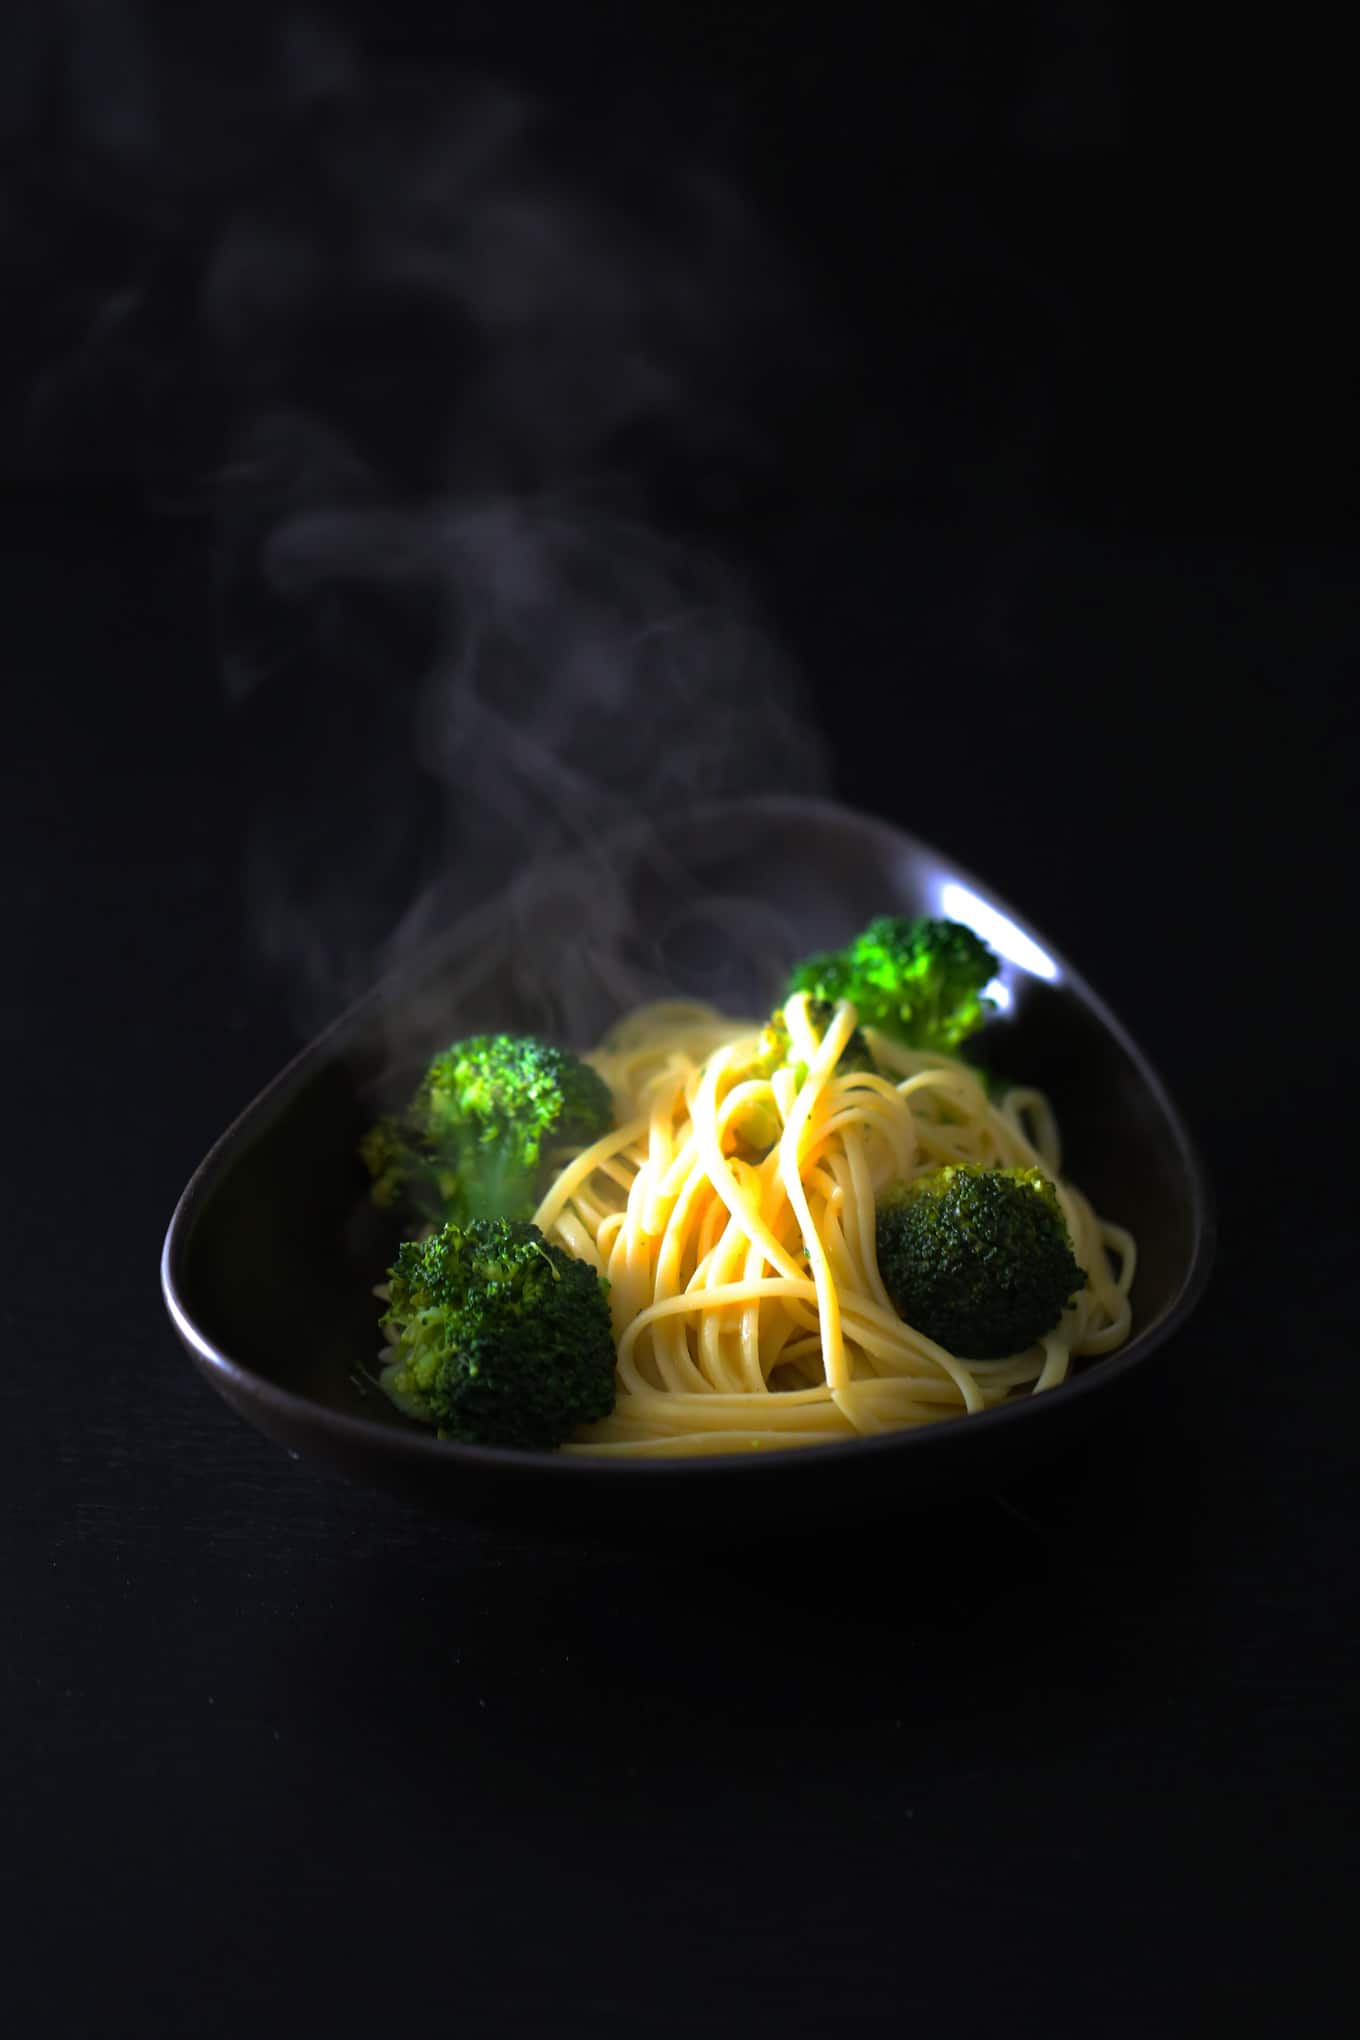 lemon garlic sauce with broccoli and pasta